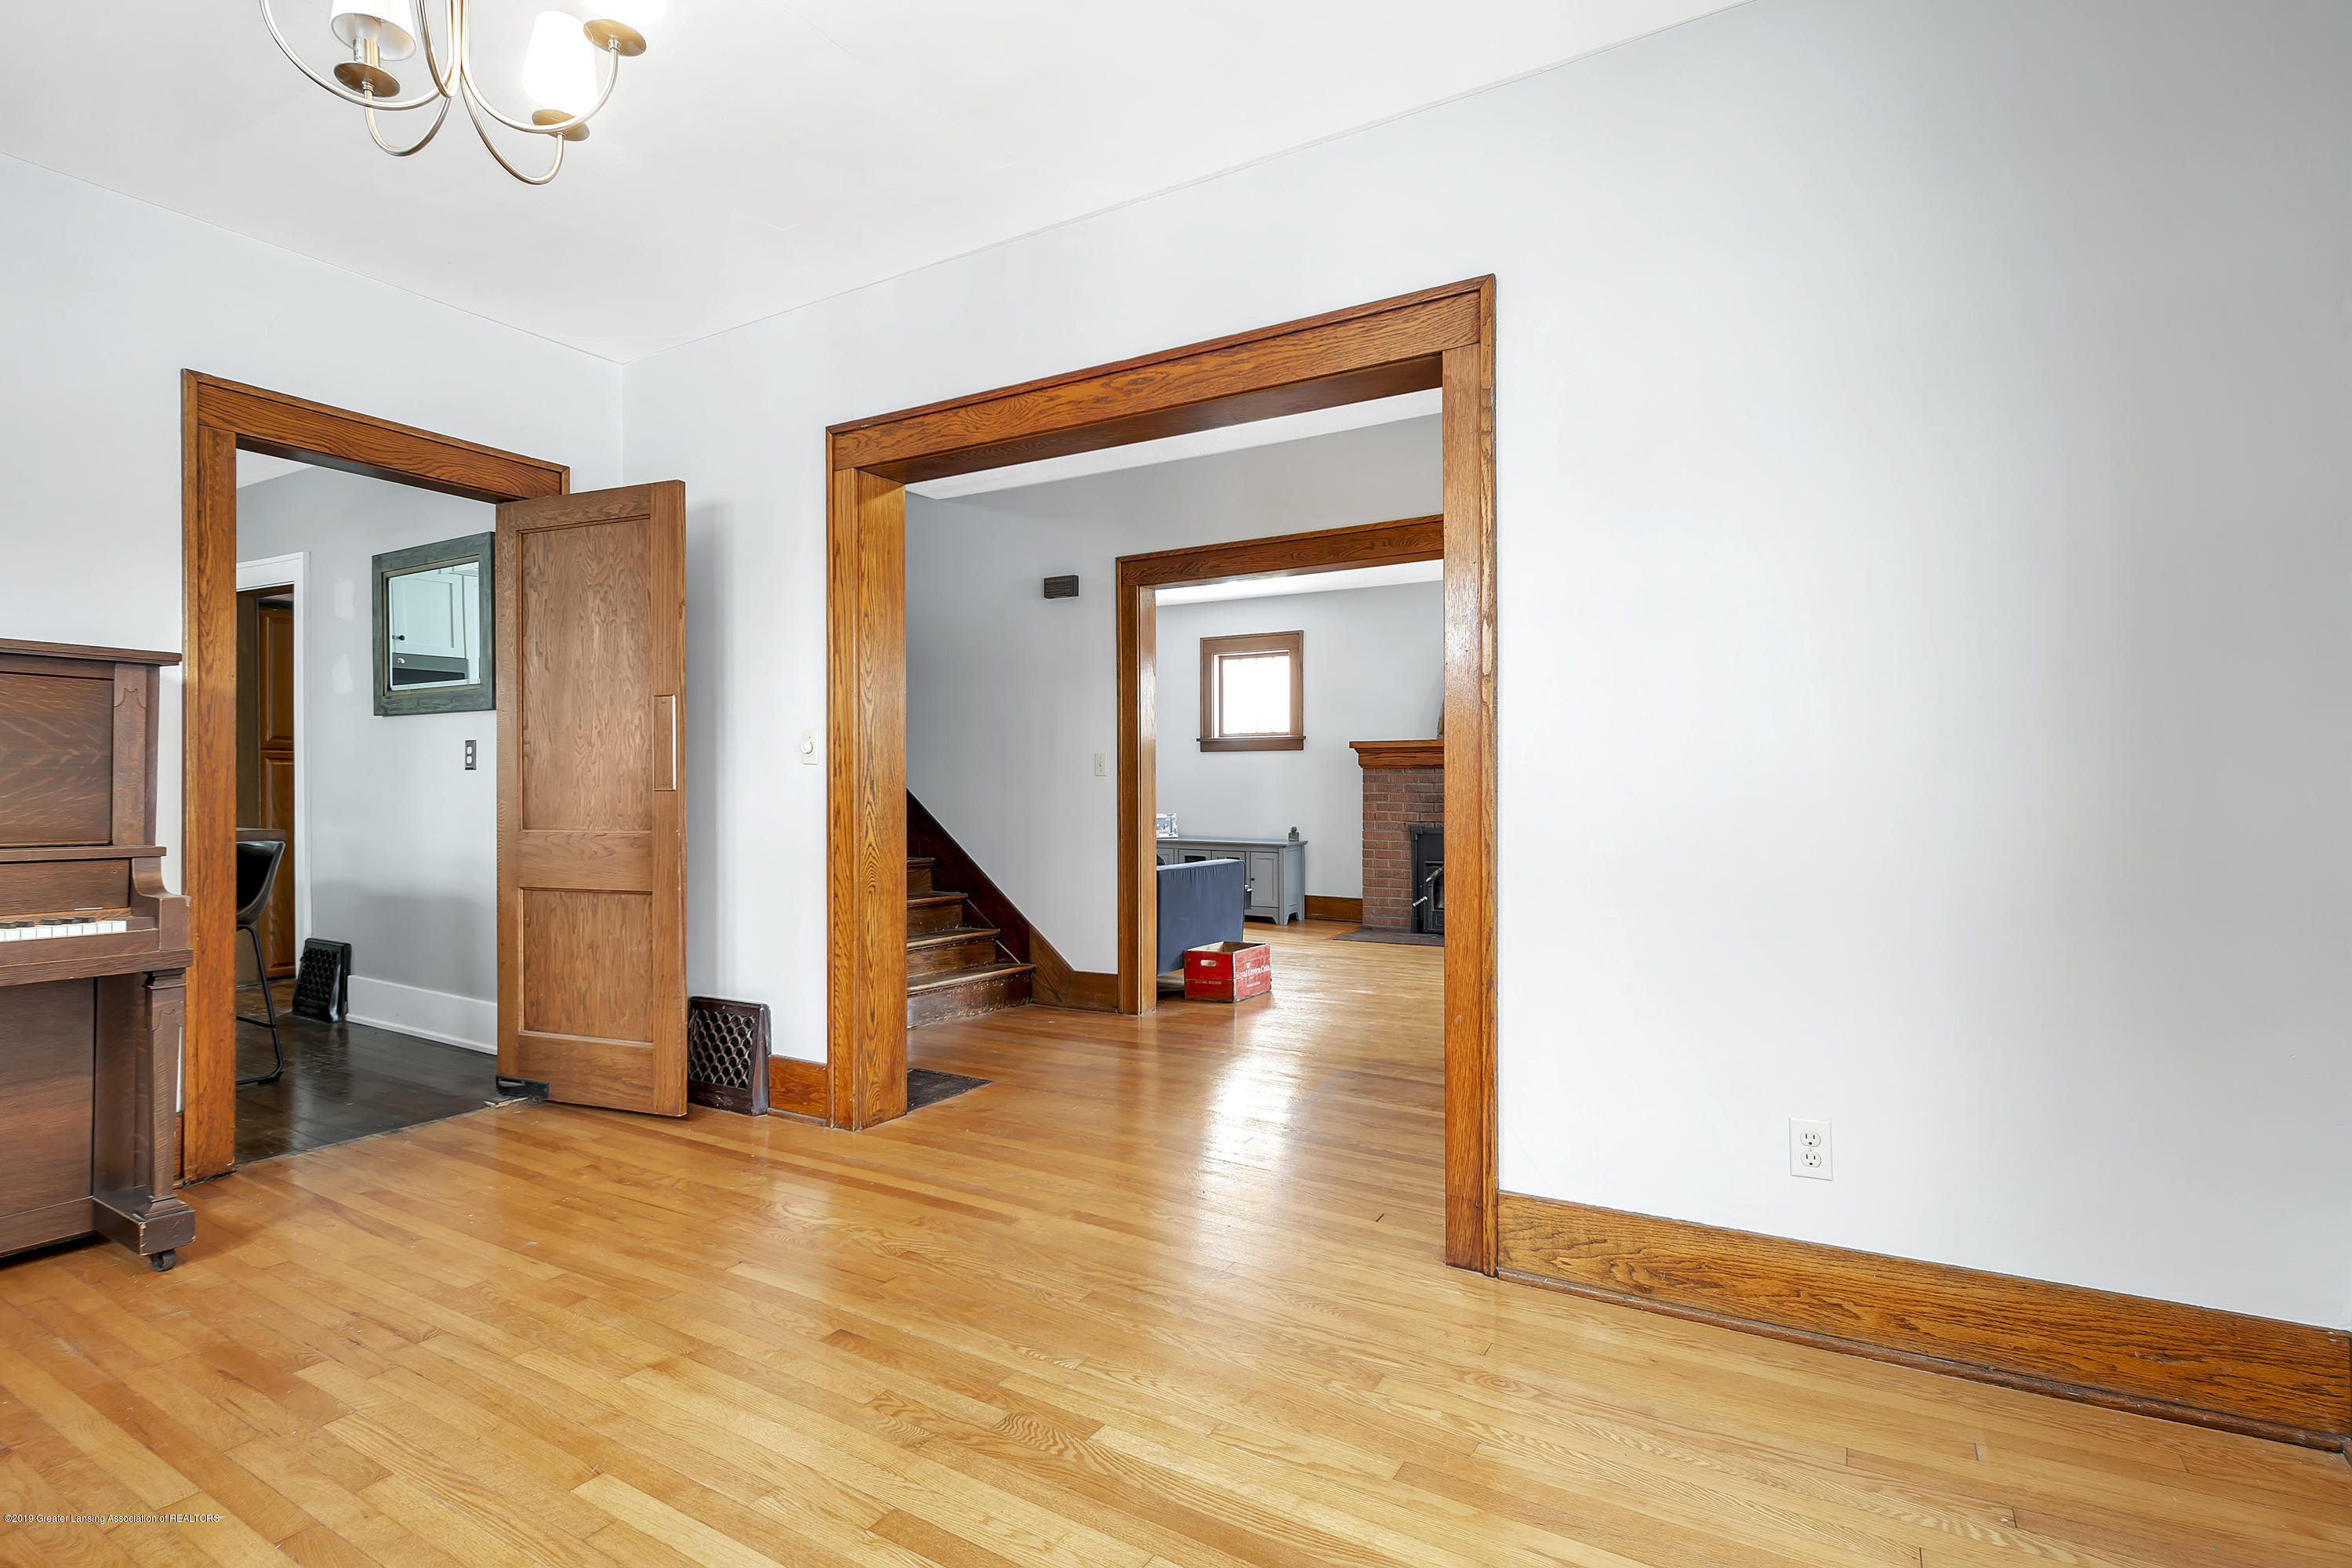 412 E Jefferson St - 412-E-Jefferson-WindowStill-Real-Estate- - 17